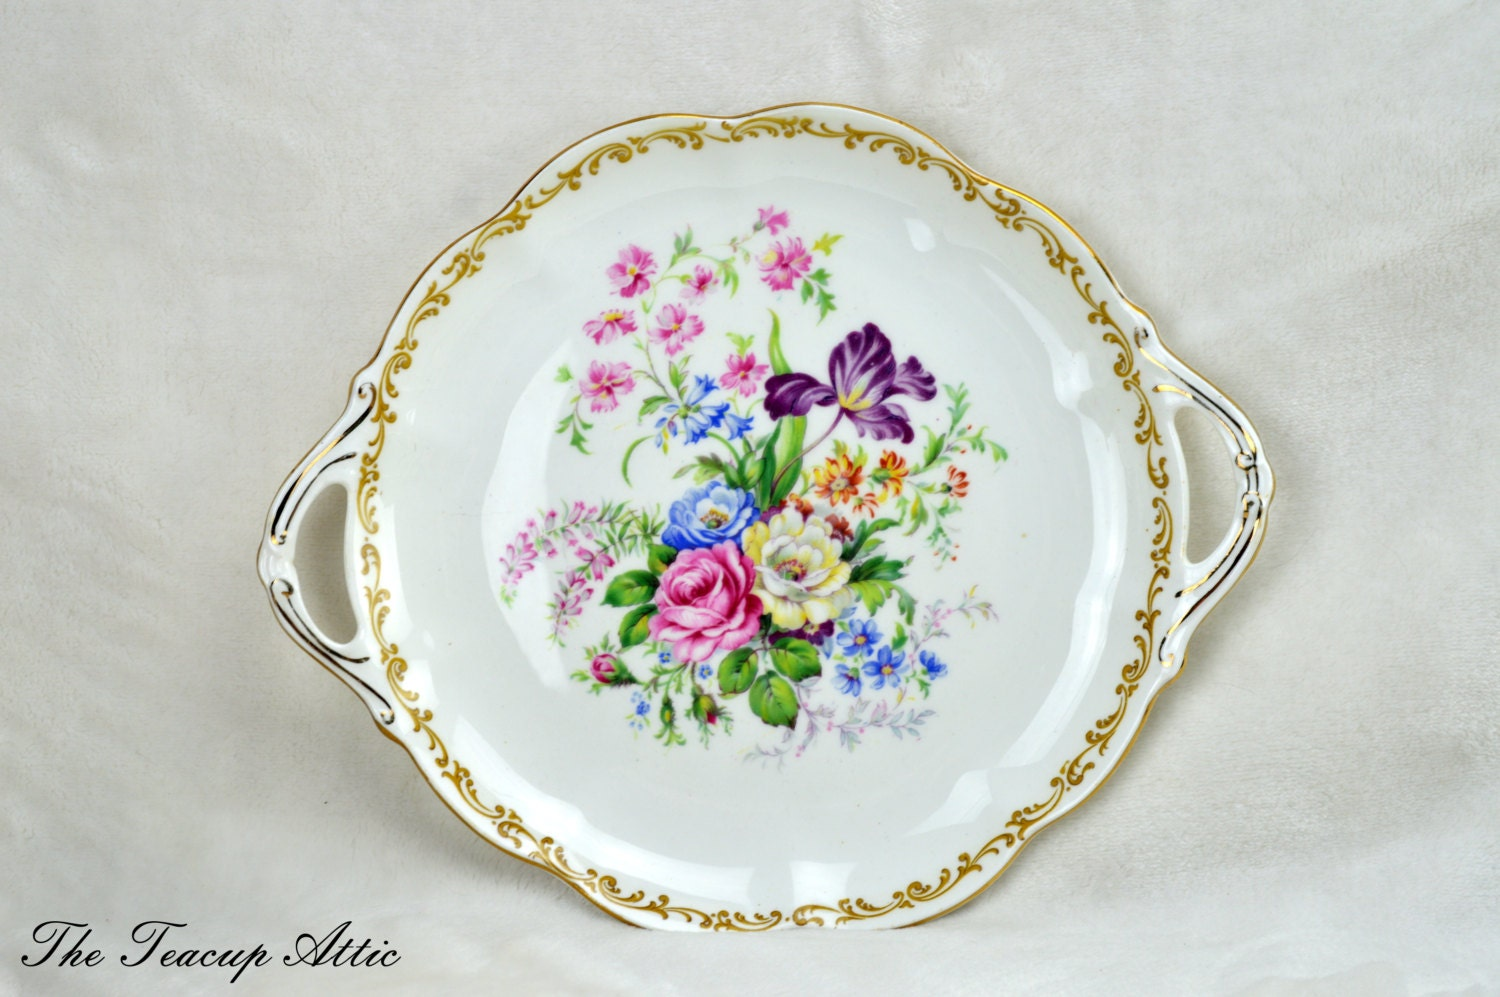 Royal Albert Nosegay Cake Plate, English Bone China Cookie Plate, Dessert Plate, Tea Party, ca 1940